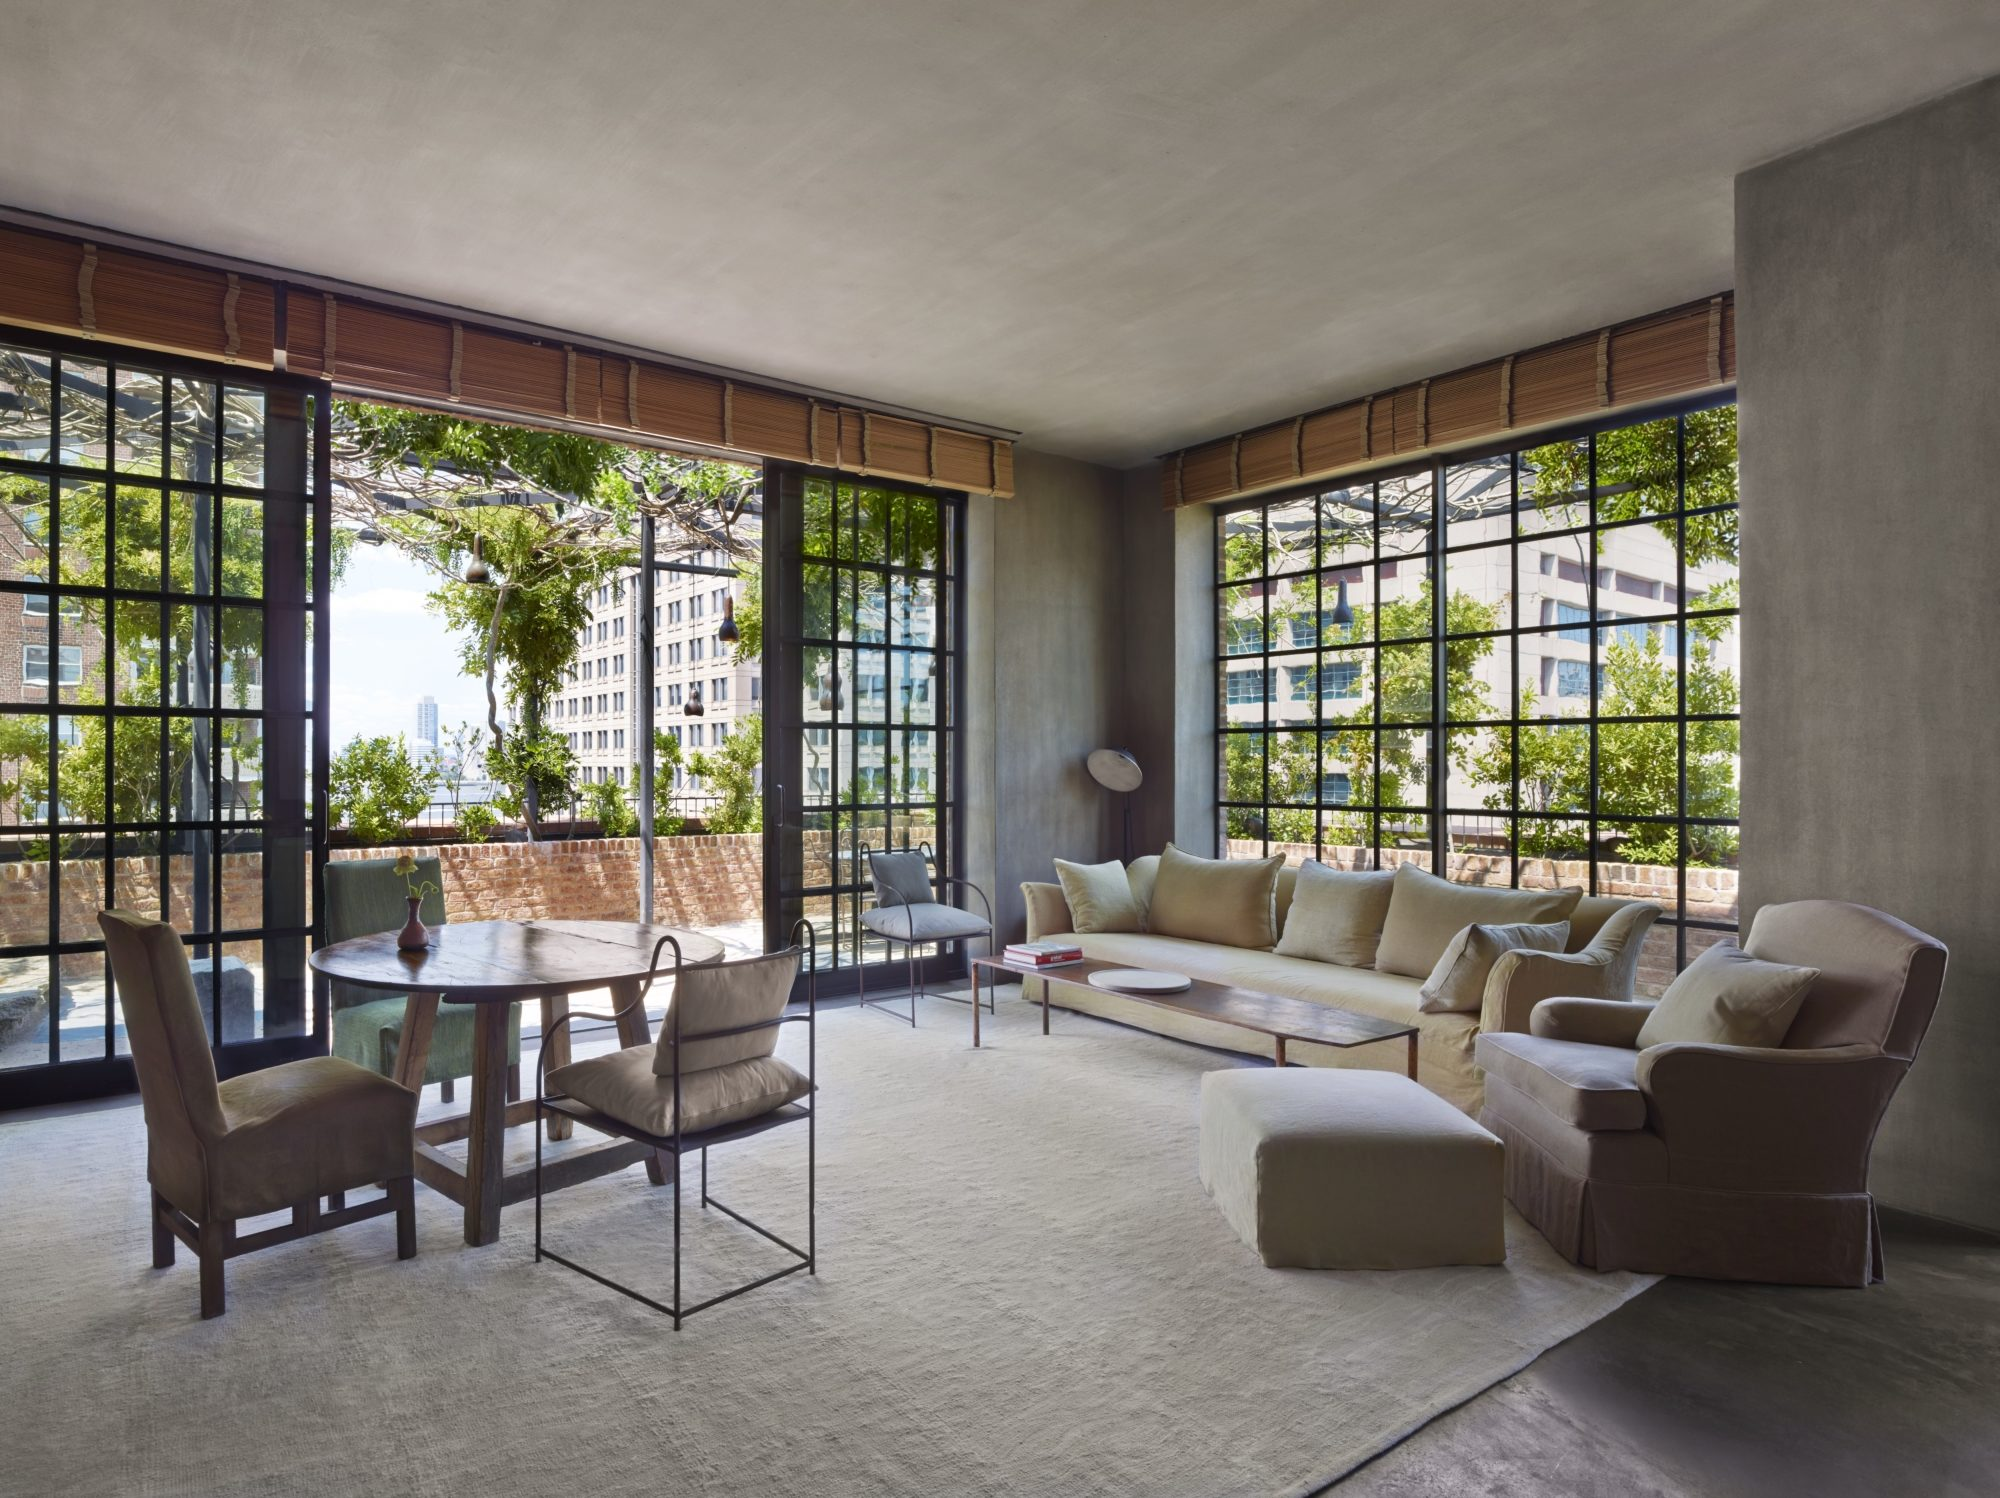 Indoors meets the outdoors with a view of the sitting room and terrace in TriBeCa at New York's Greenwich Hotel